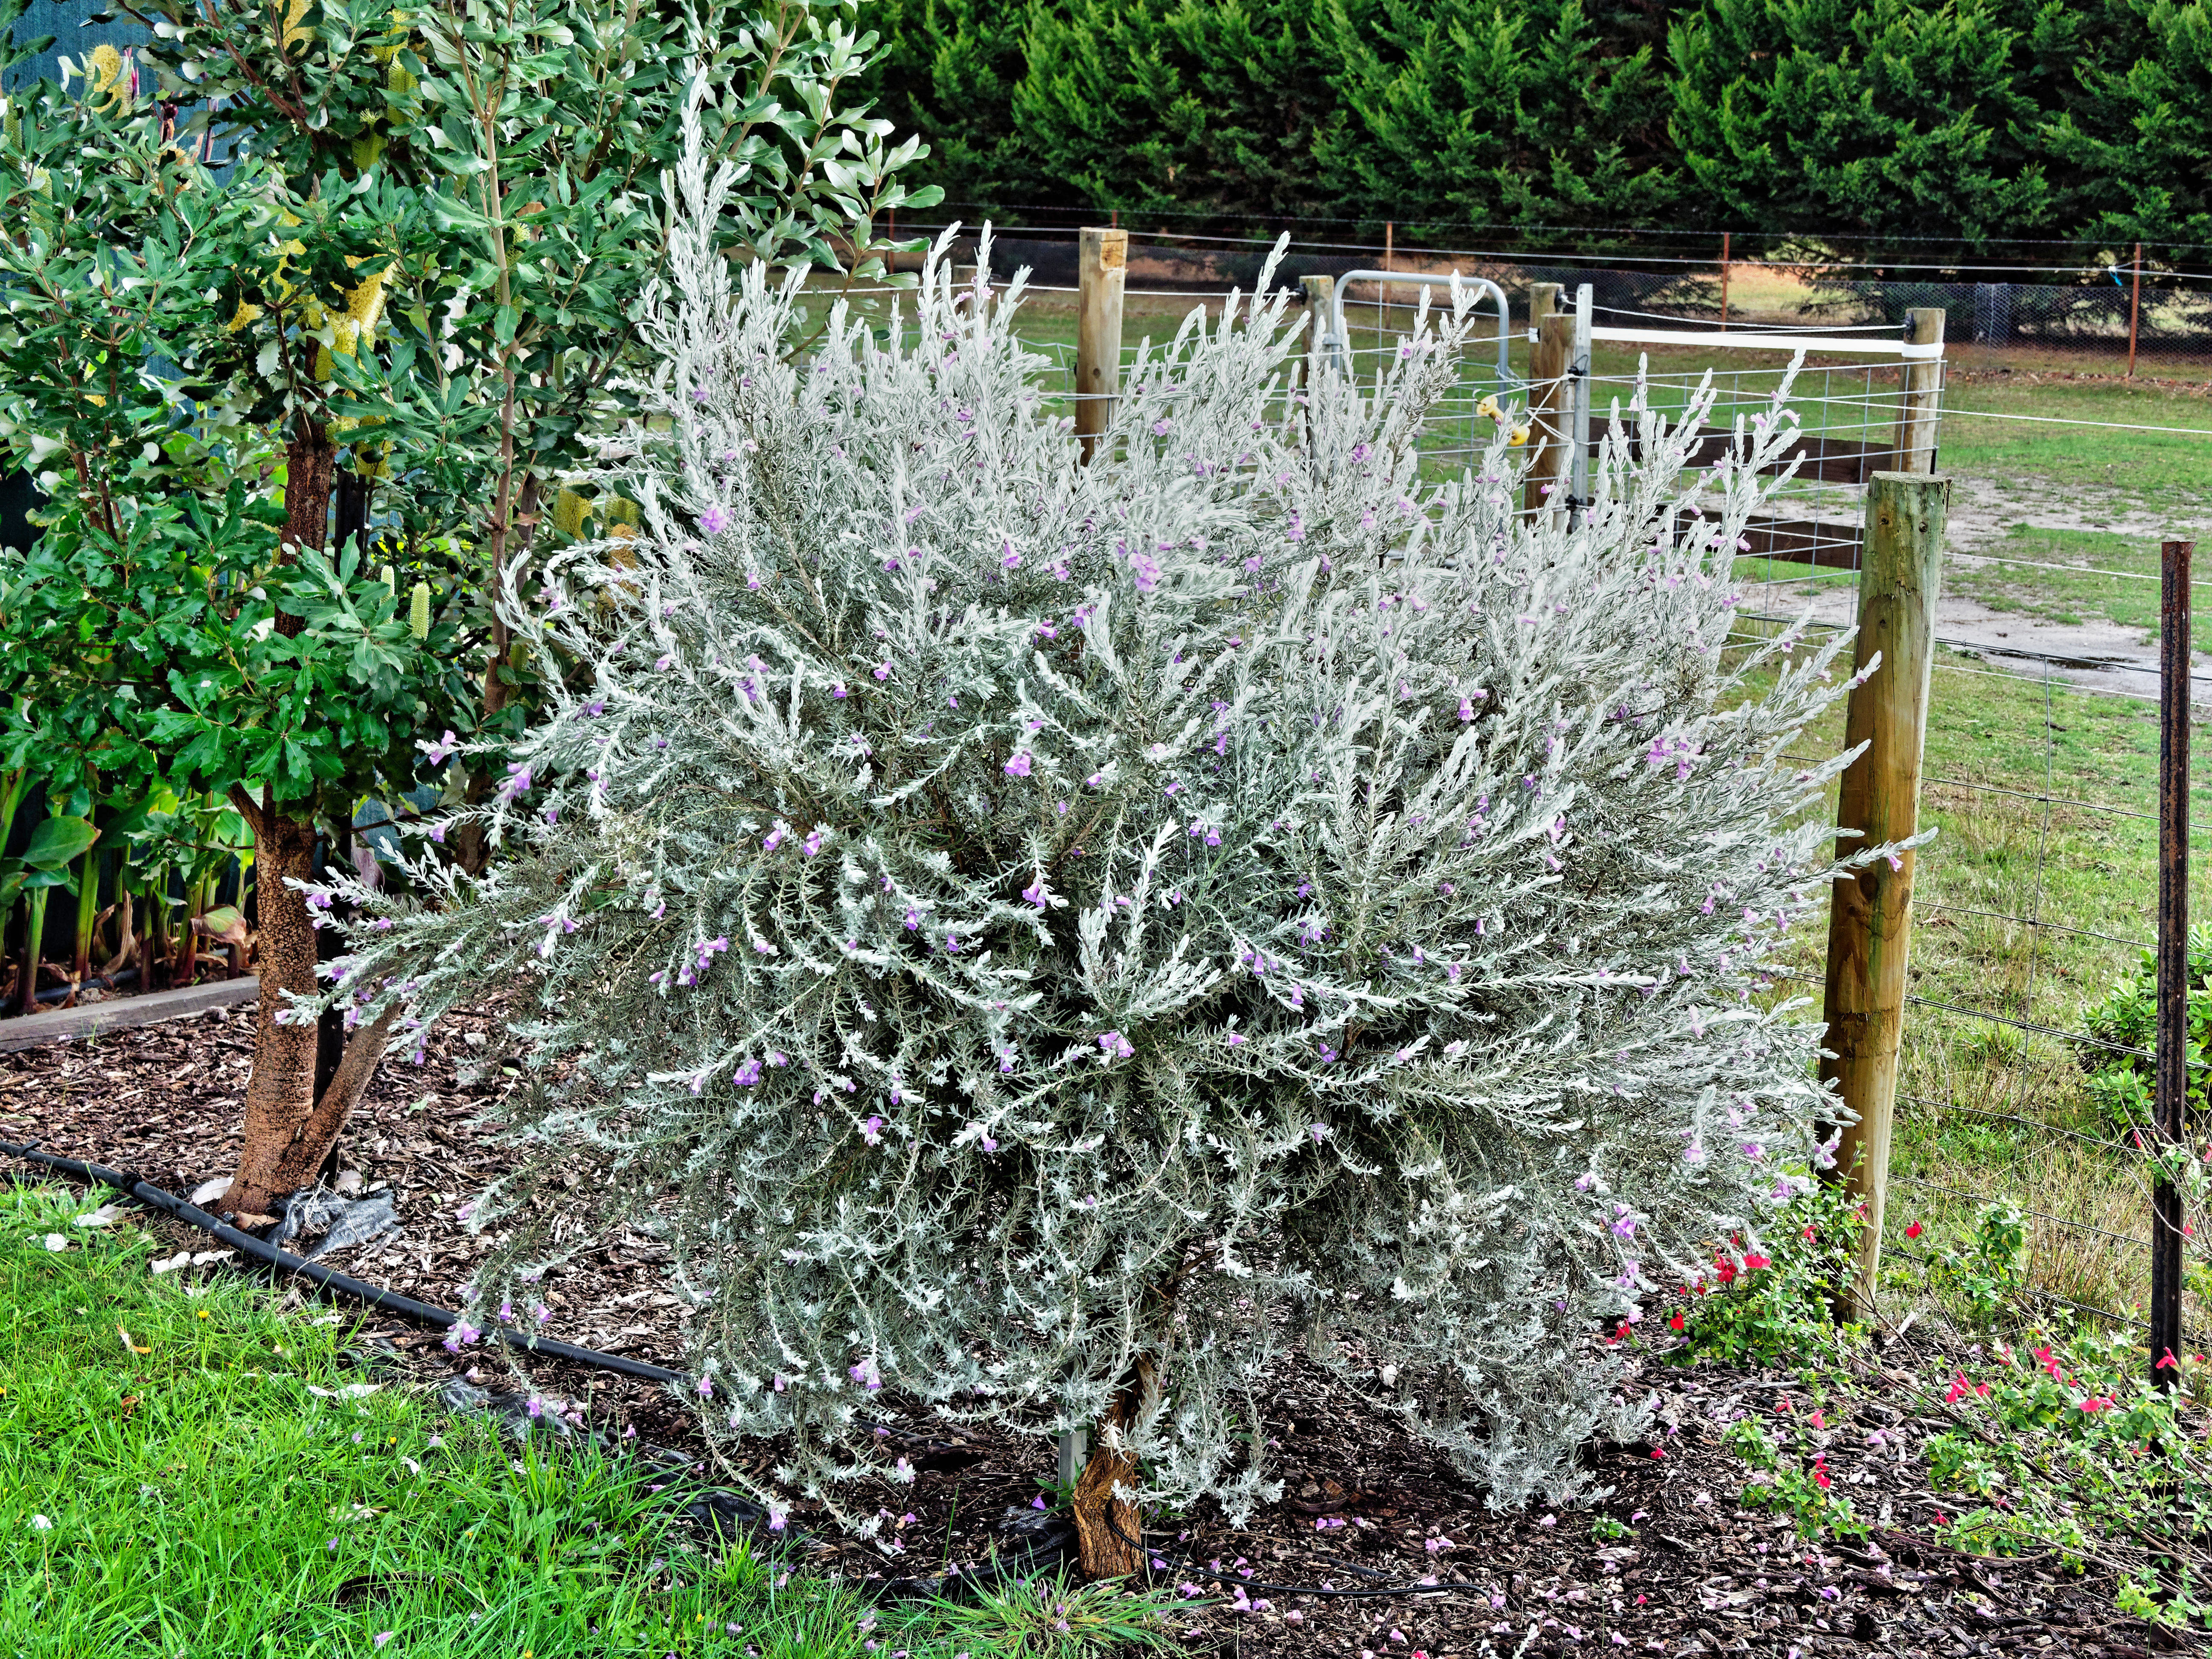 This should be Eremophila-nivea.jpeg.  Is it missing?